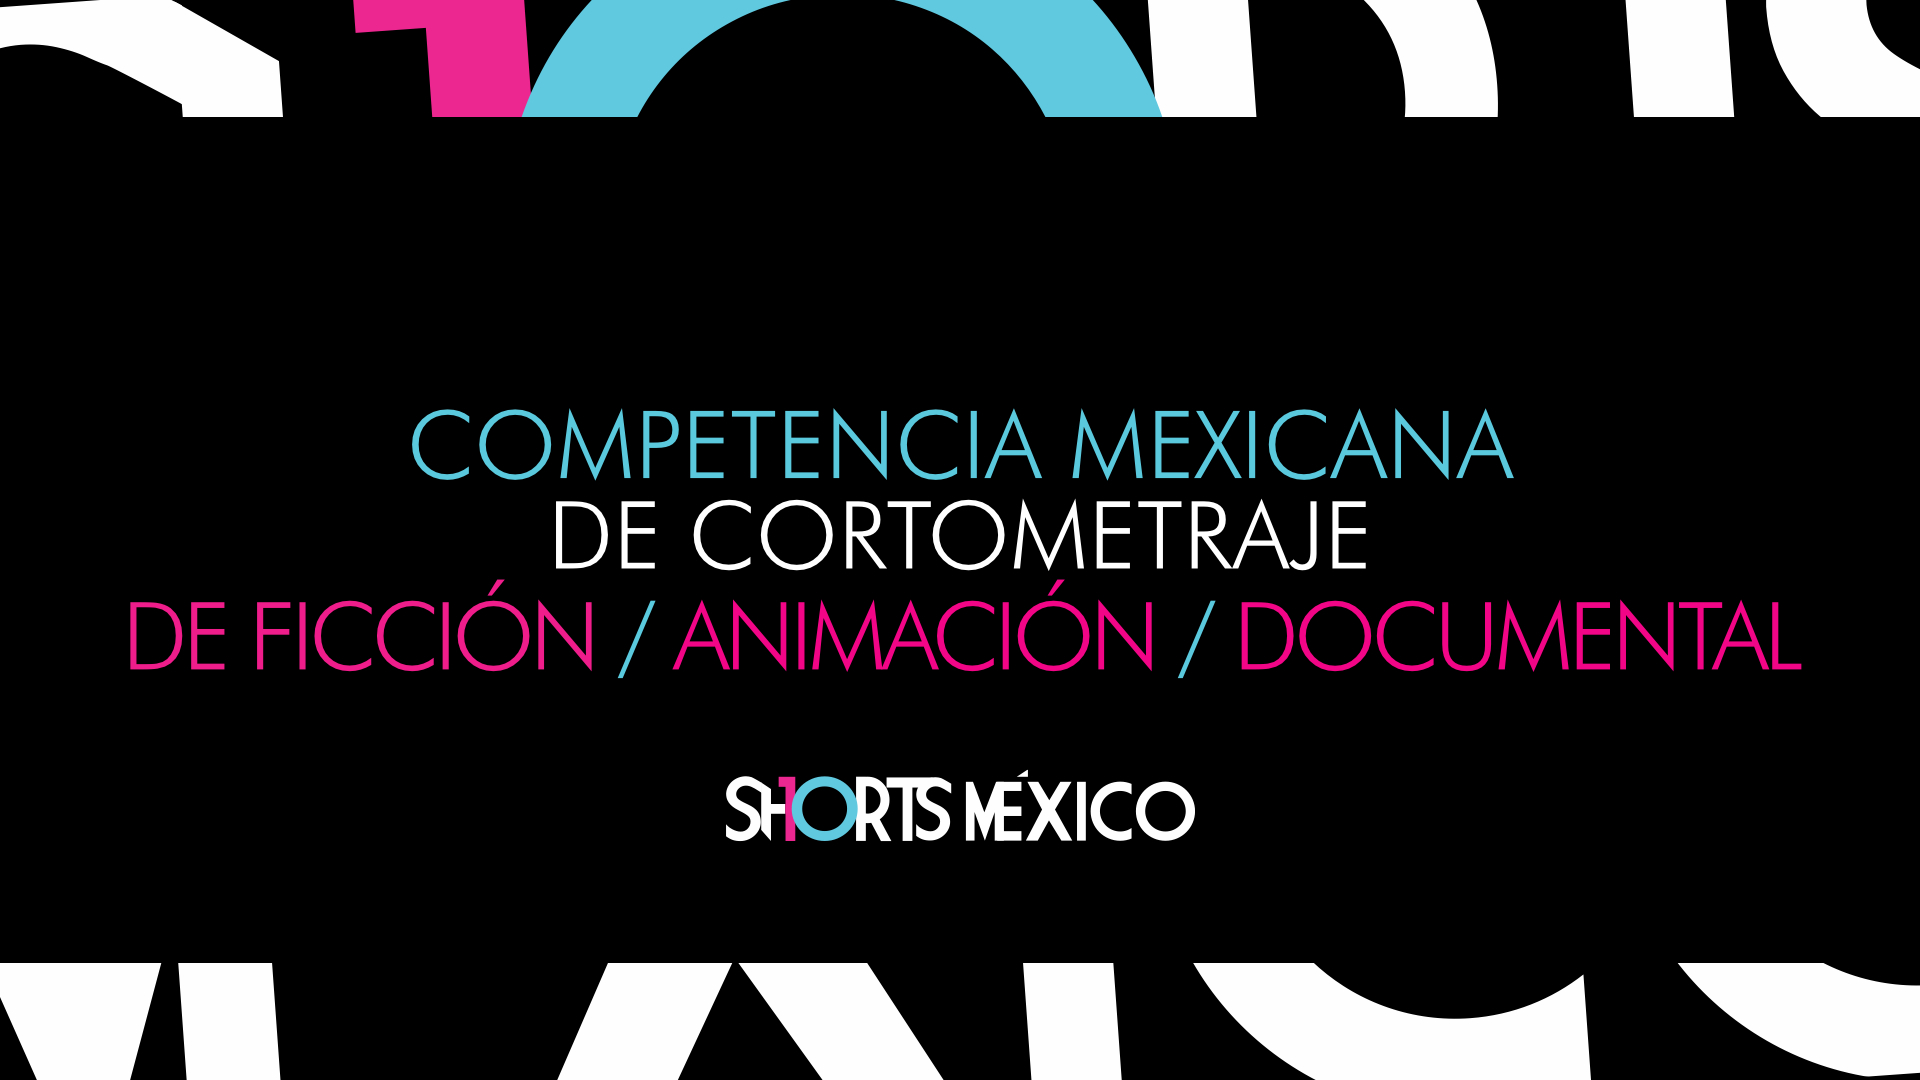 ShortsMexicoCompetencias.001